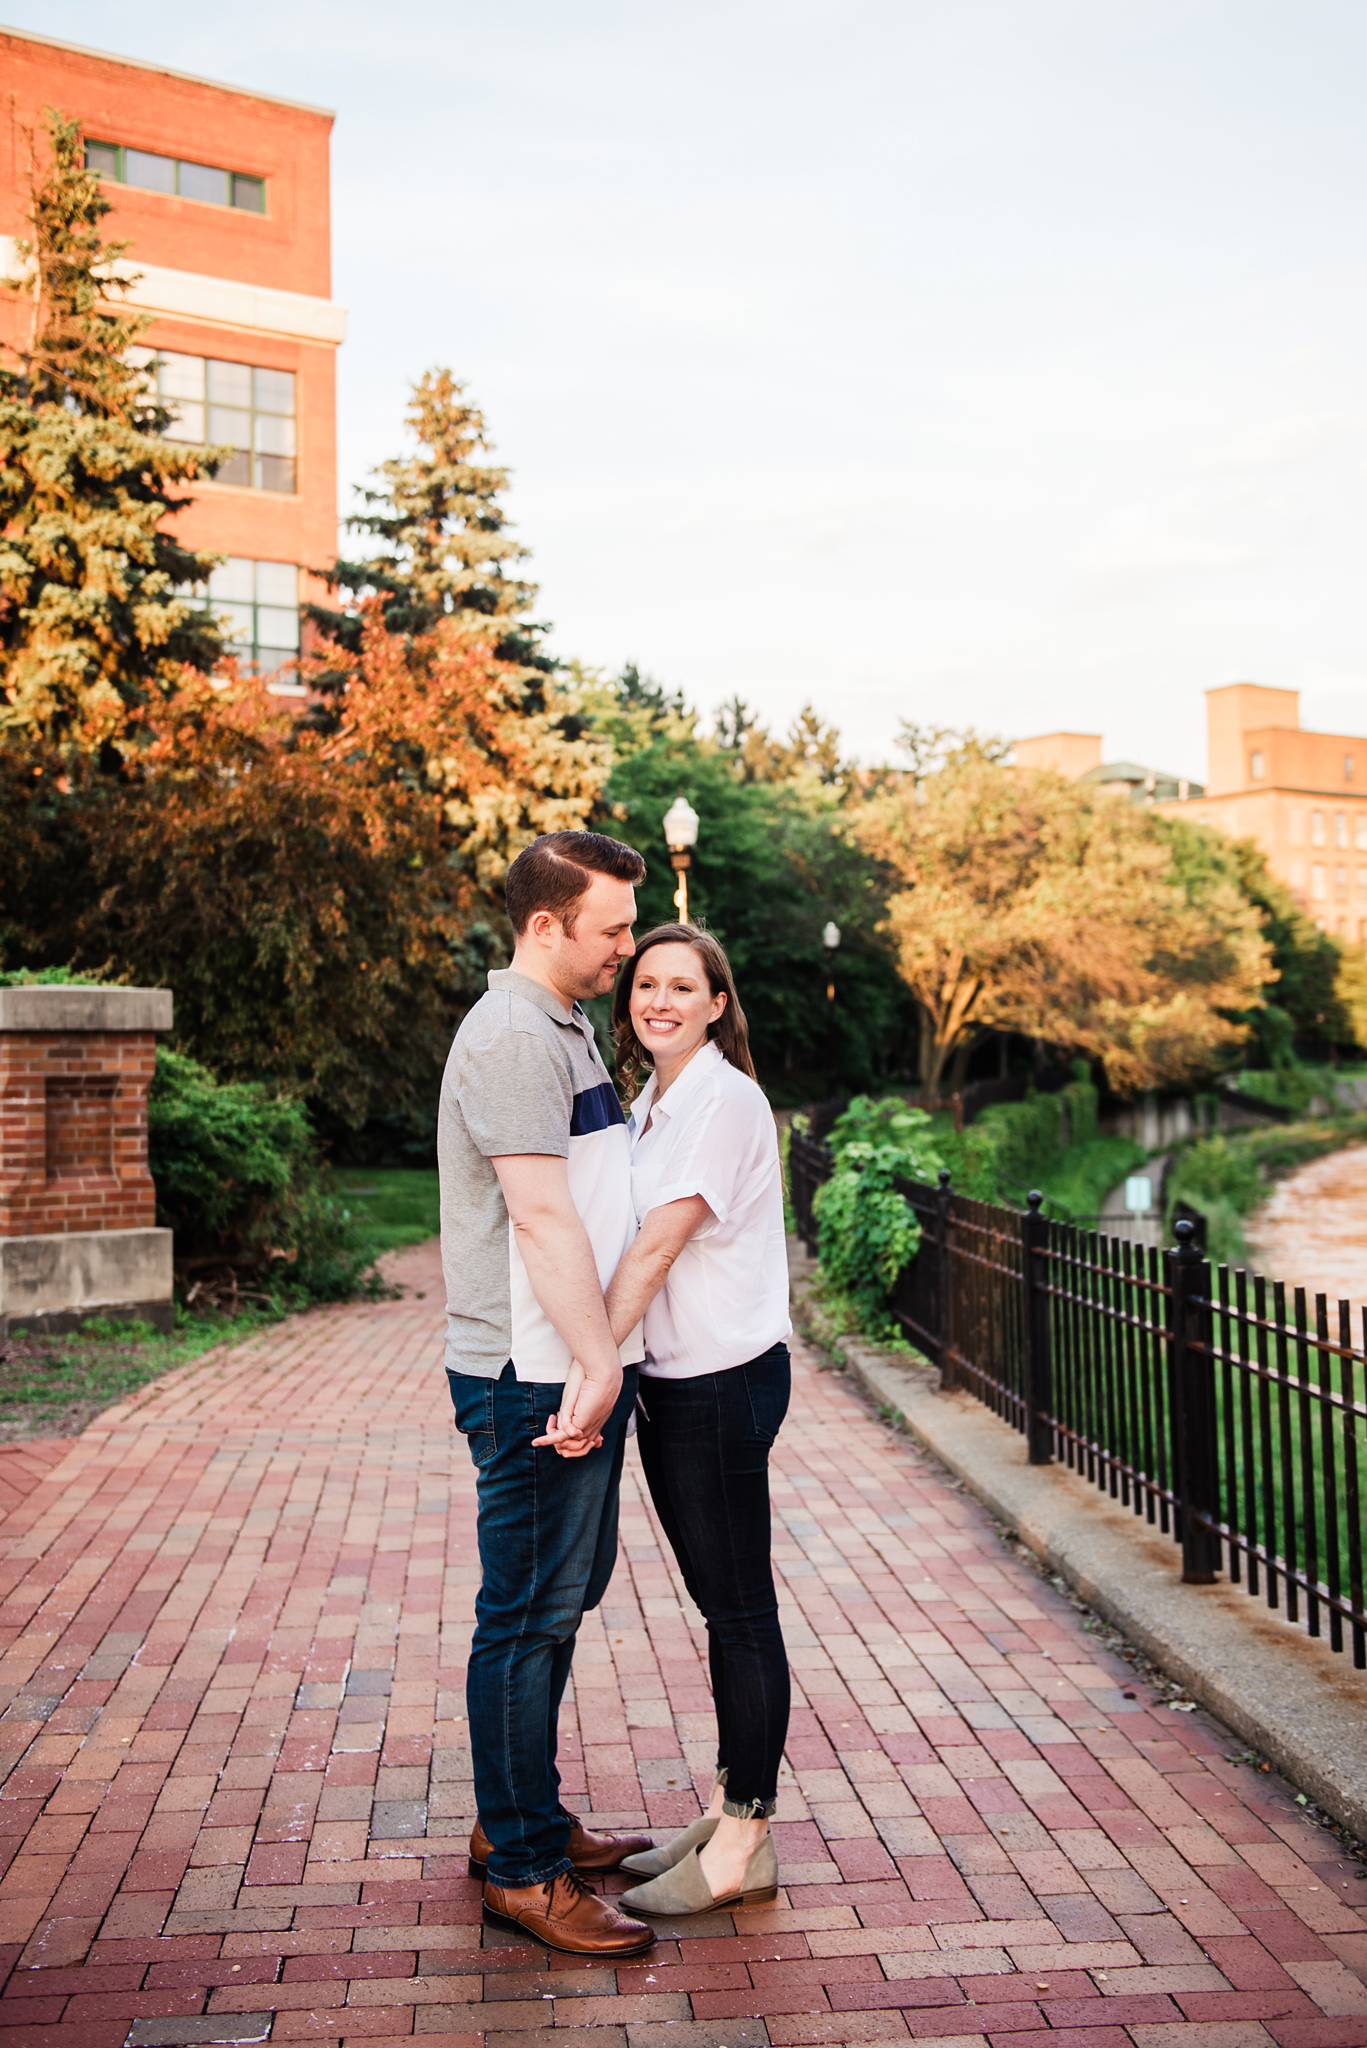 Franklin_Square_Park_Syracuse_Engagement_Session_JILL_STUDIO_Rochester_NY_Photographer_DSC_4196.jpg